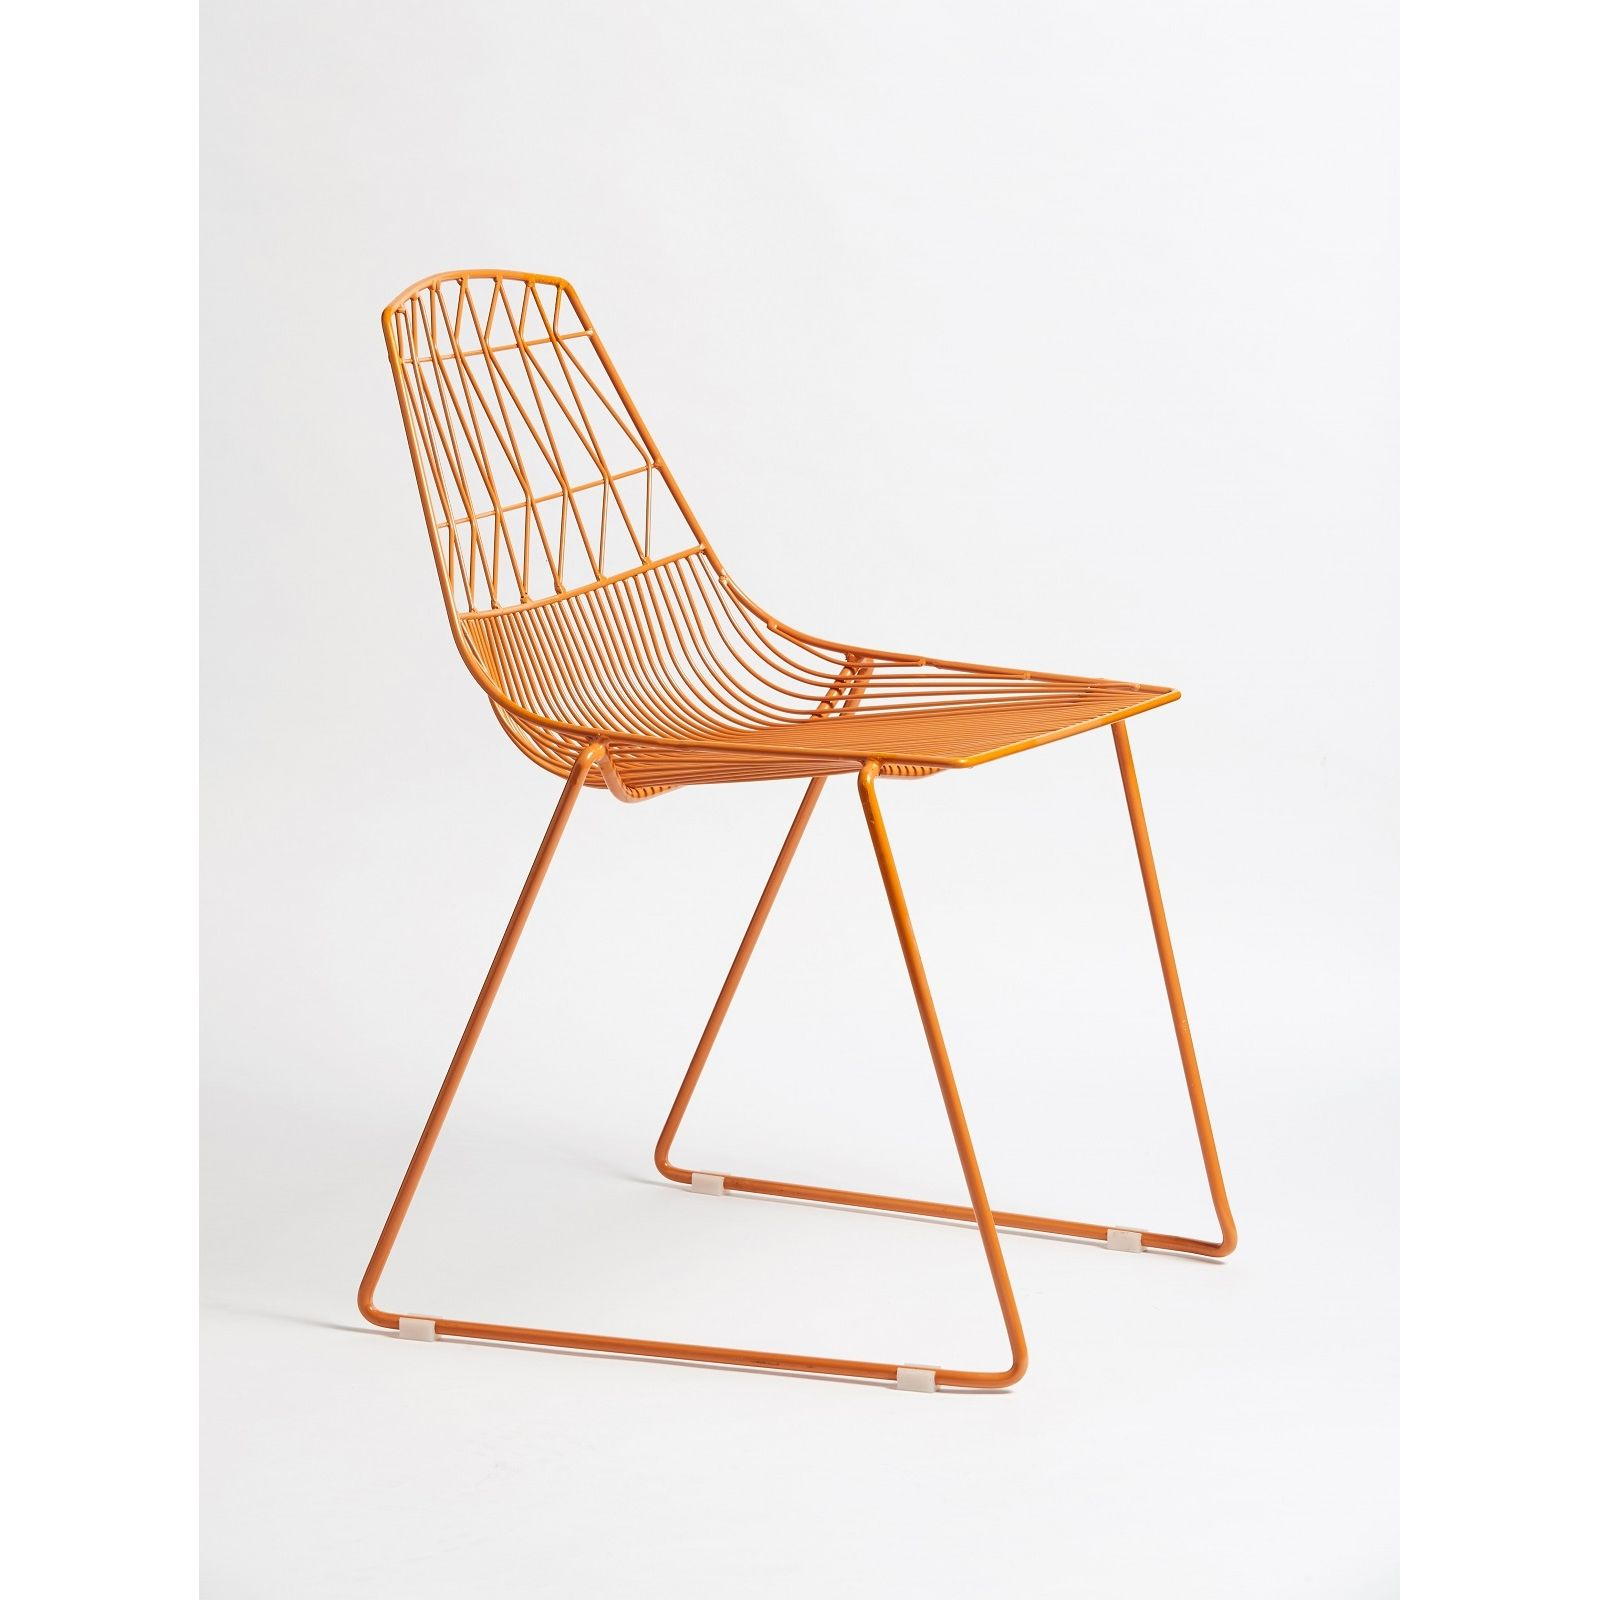 Find Marquee Orange Baha Chair at Bunnings Warehouse